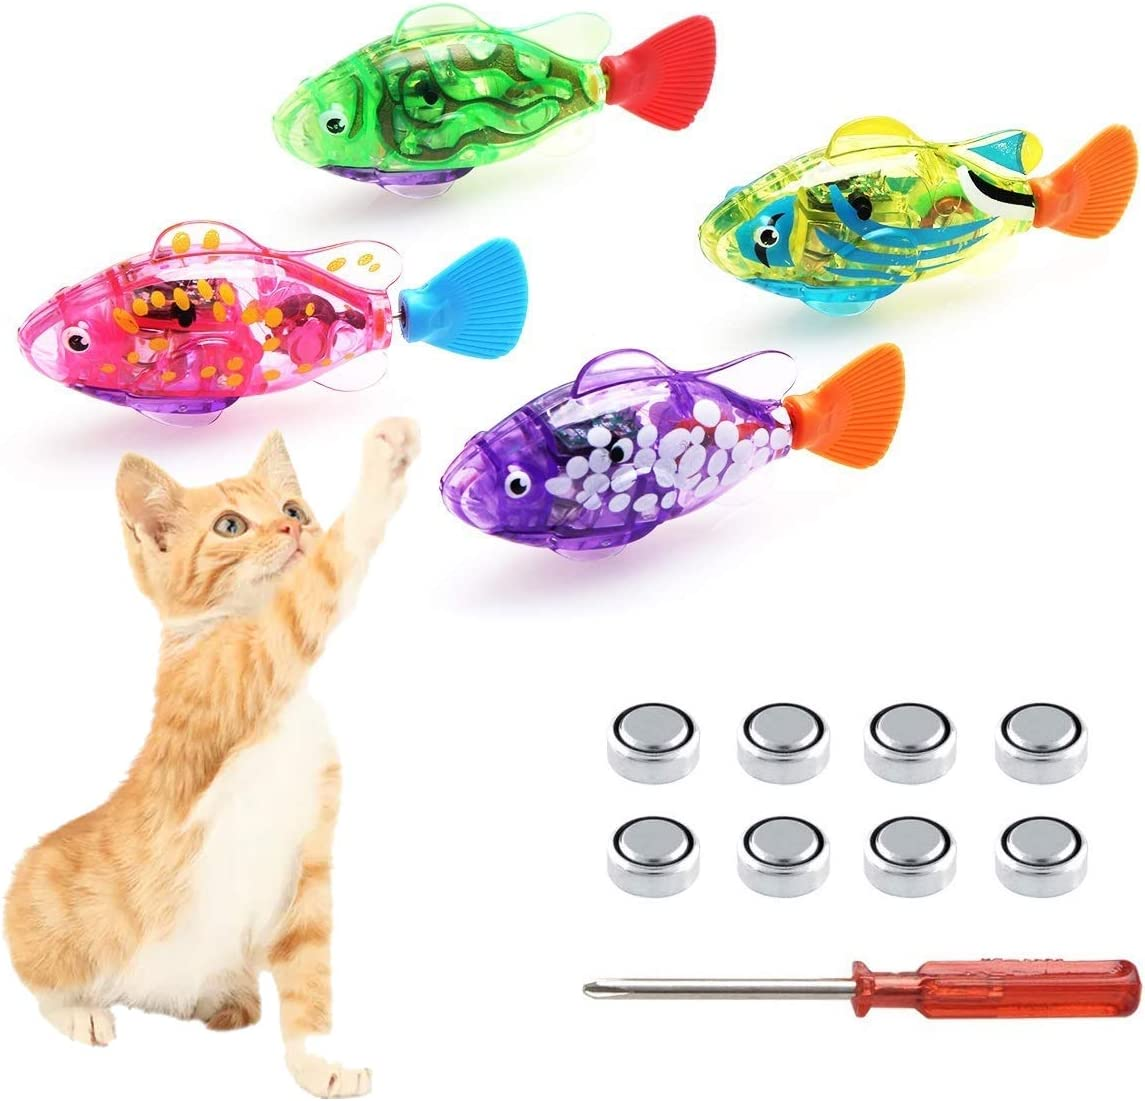 Swimming Robot Fish for Cats, Interactive Cat Fish Toys Fish Tank Toy with  LED Light Cat Toy Dog Toy Swimming Bath Plastic Fish Toy, Cat Exercise to  Stimulate Your Pet's Hunter Instincts (